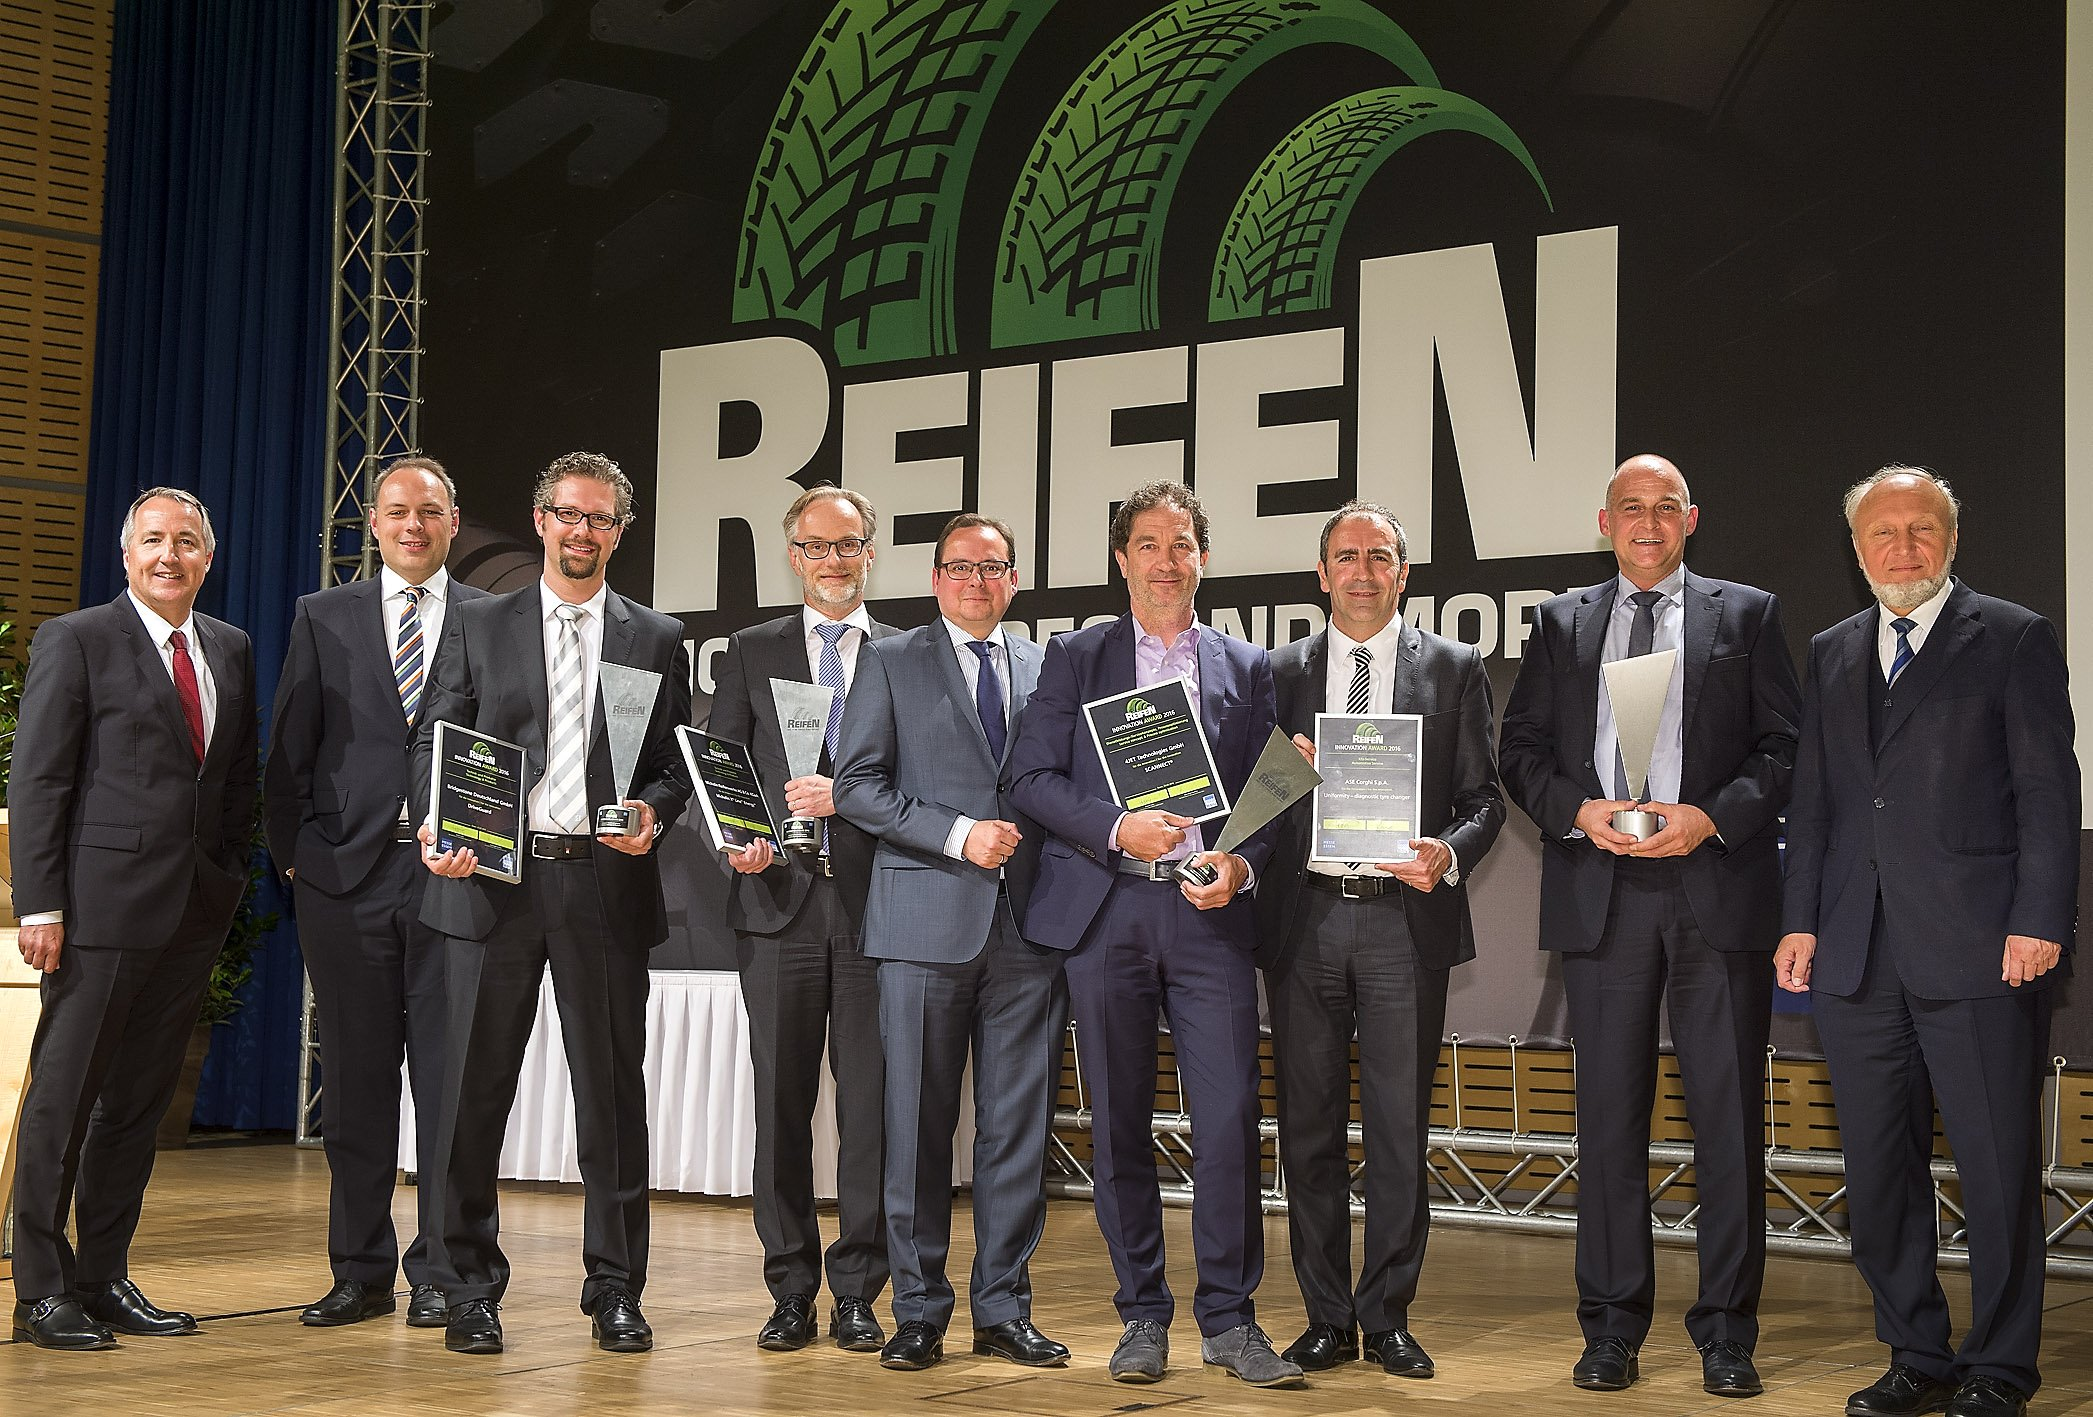 Reifen innovation award 2016